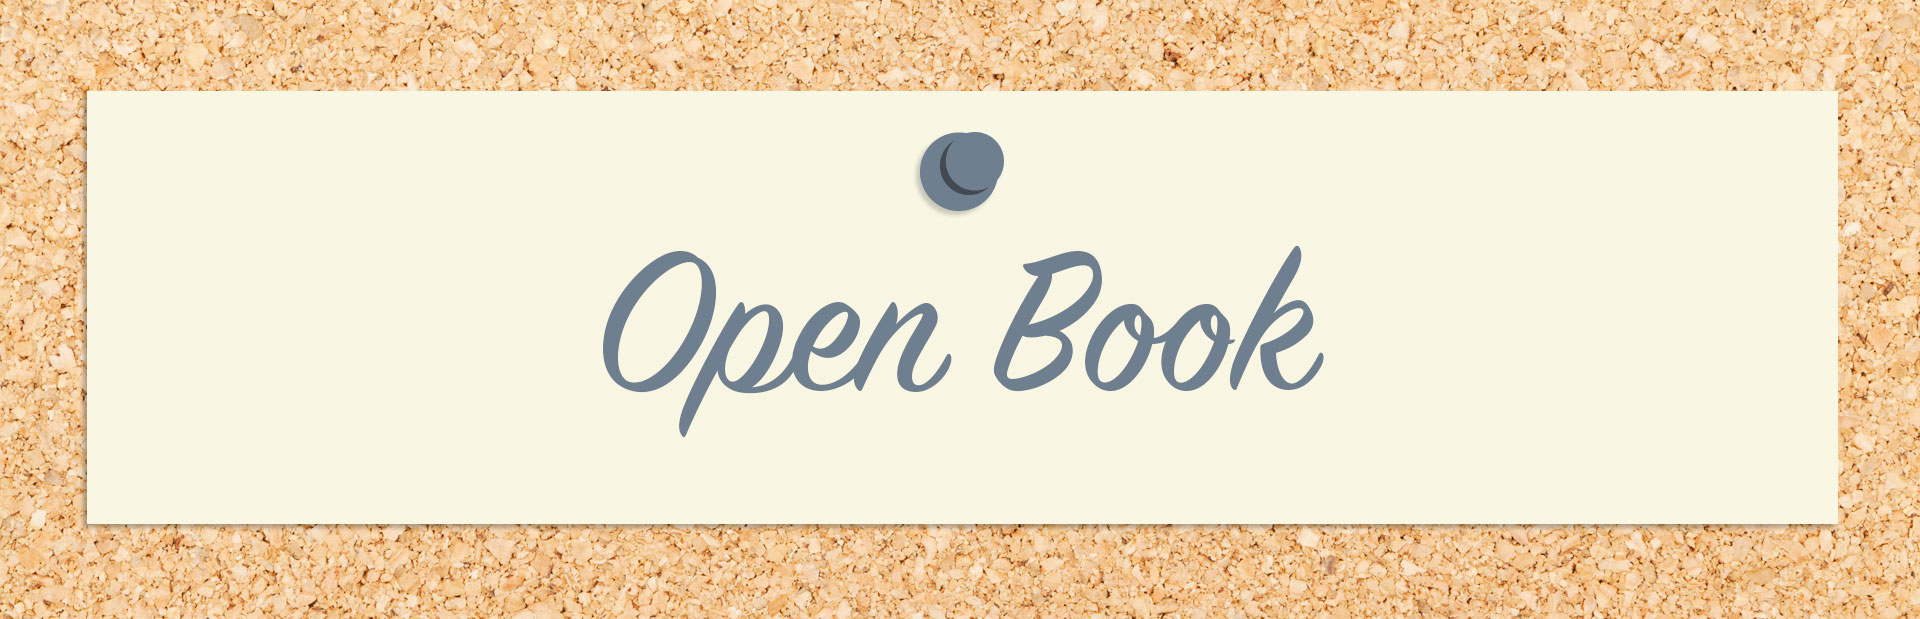 Bulletin-board-Open-Book